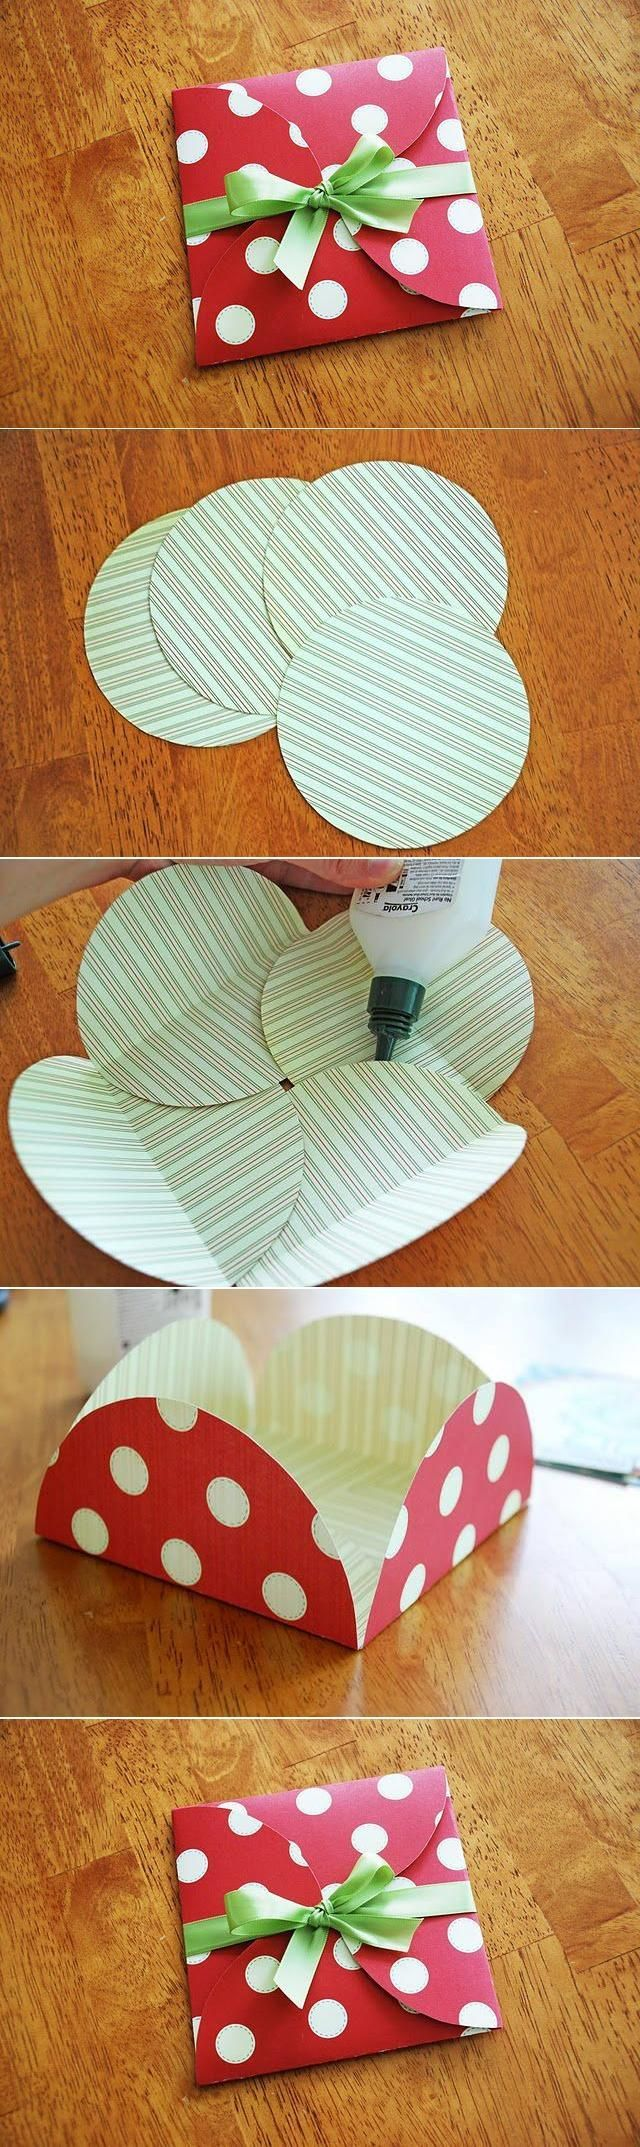 DIY cute envelopes